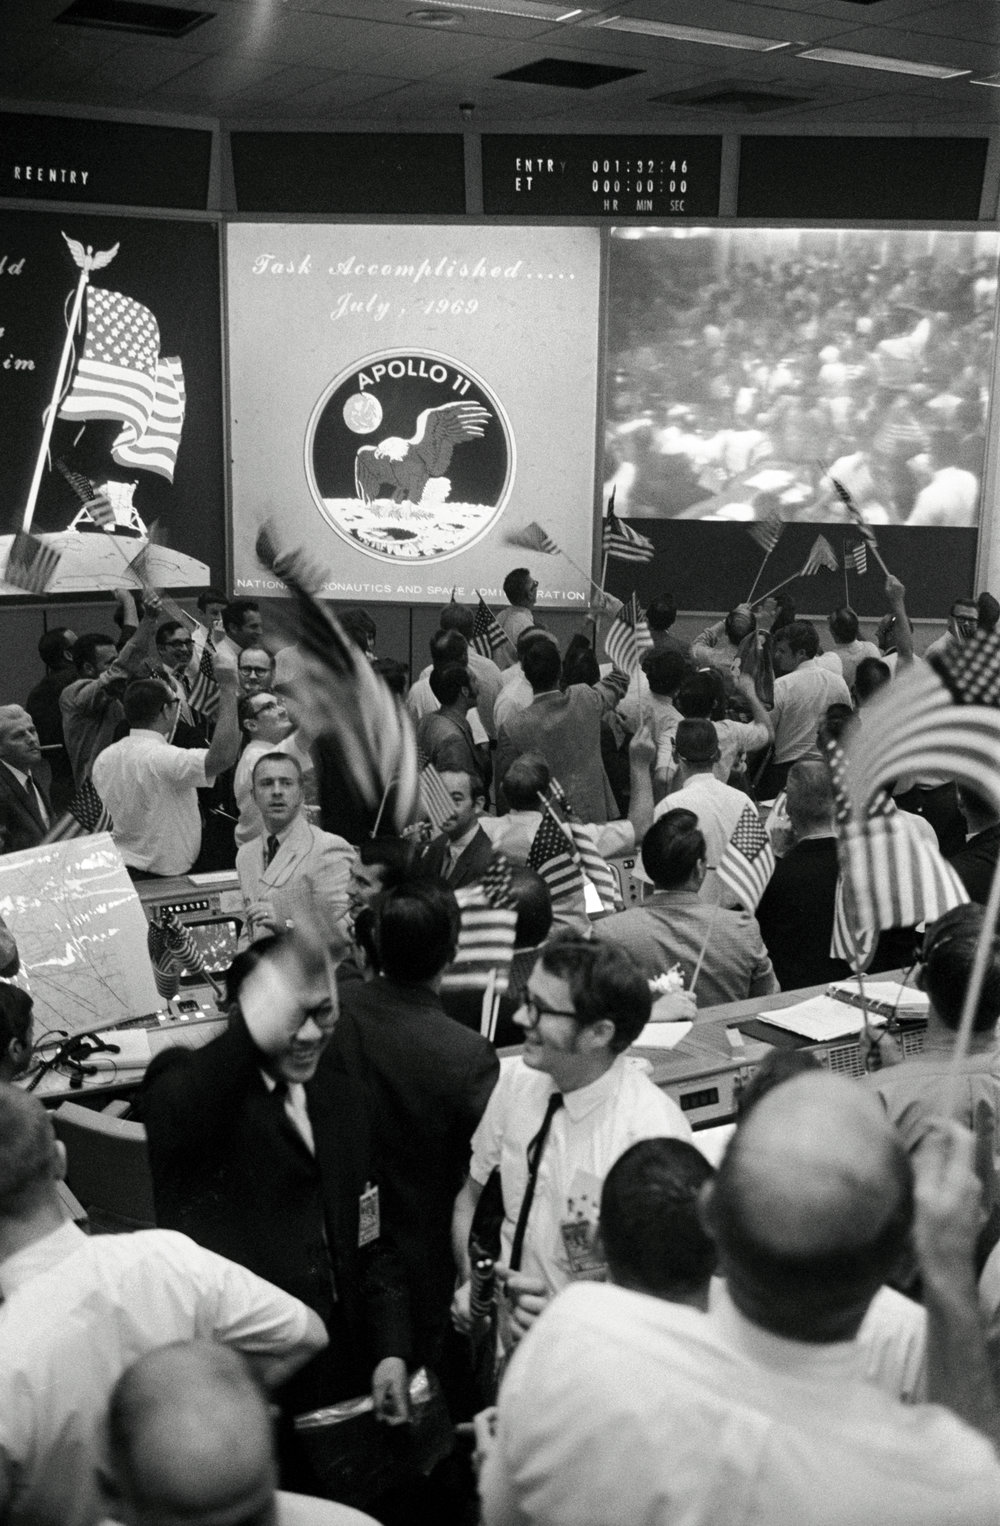 Mission_Control_Celebrates_After_Conclusion_of_the_Apollo_11_Lunar_-_GPN-2002-000033.jpg